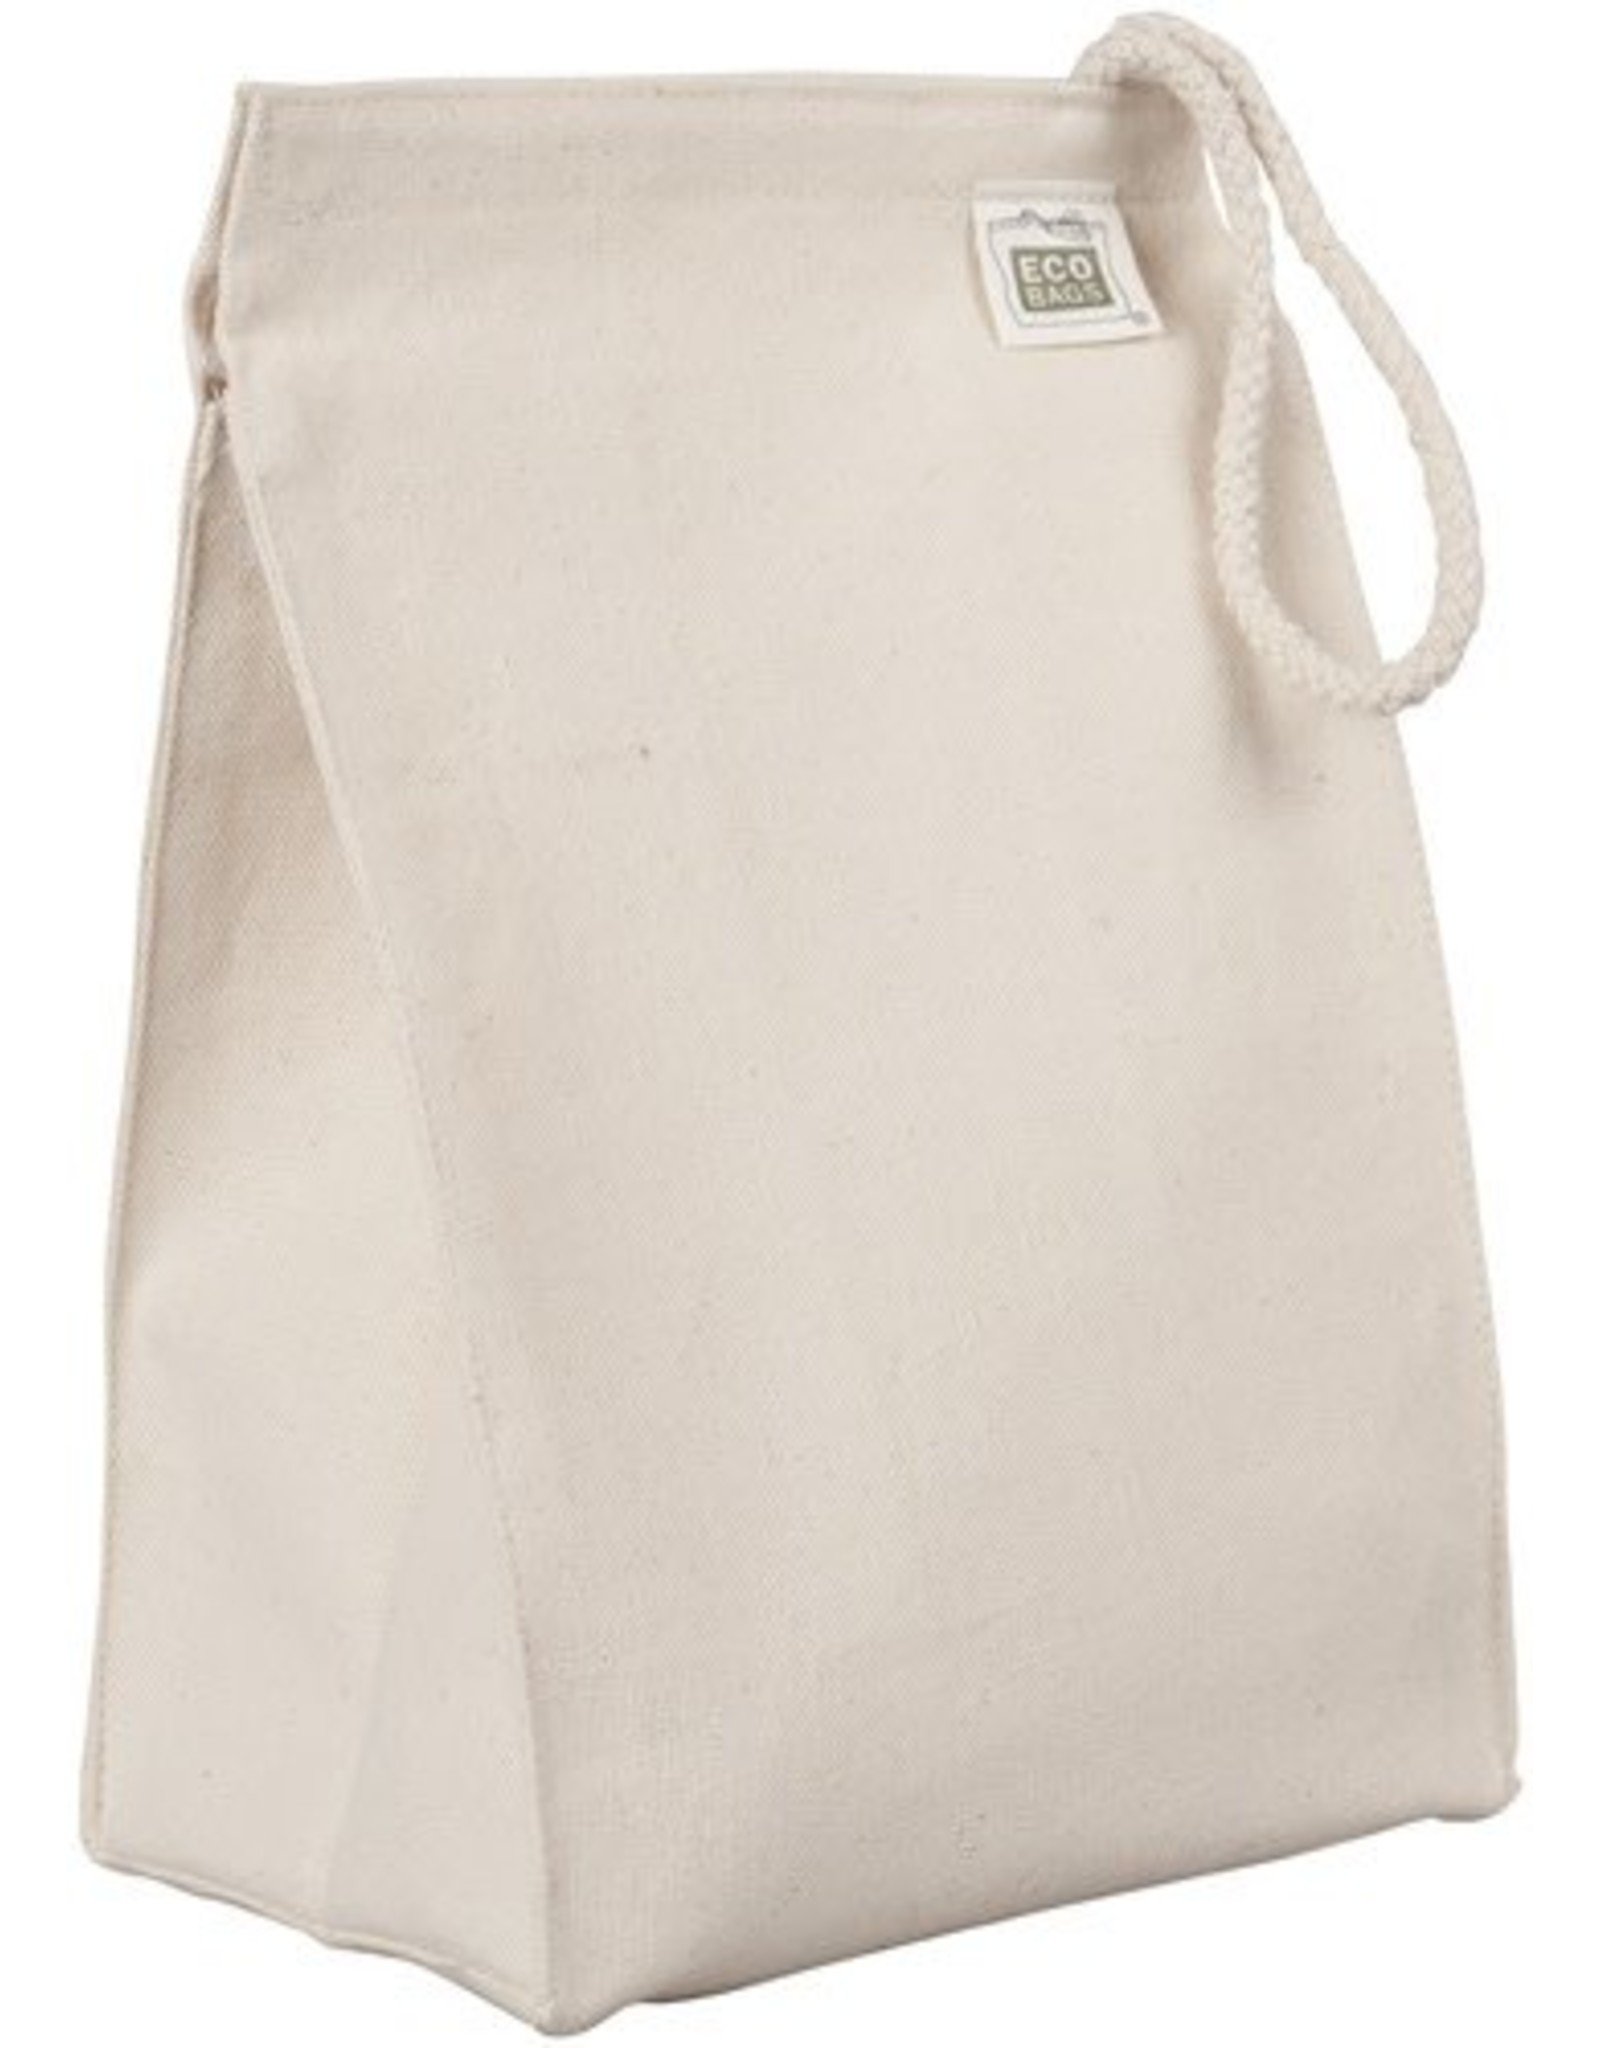 Eco-Bags Organic Cotton Lunch Bag